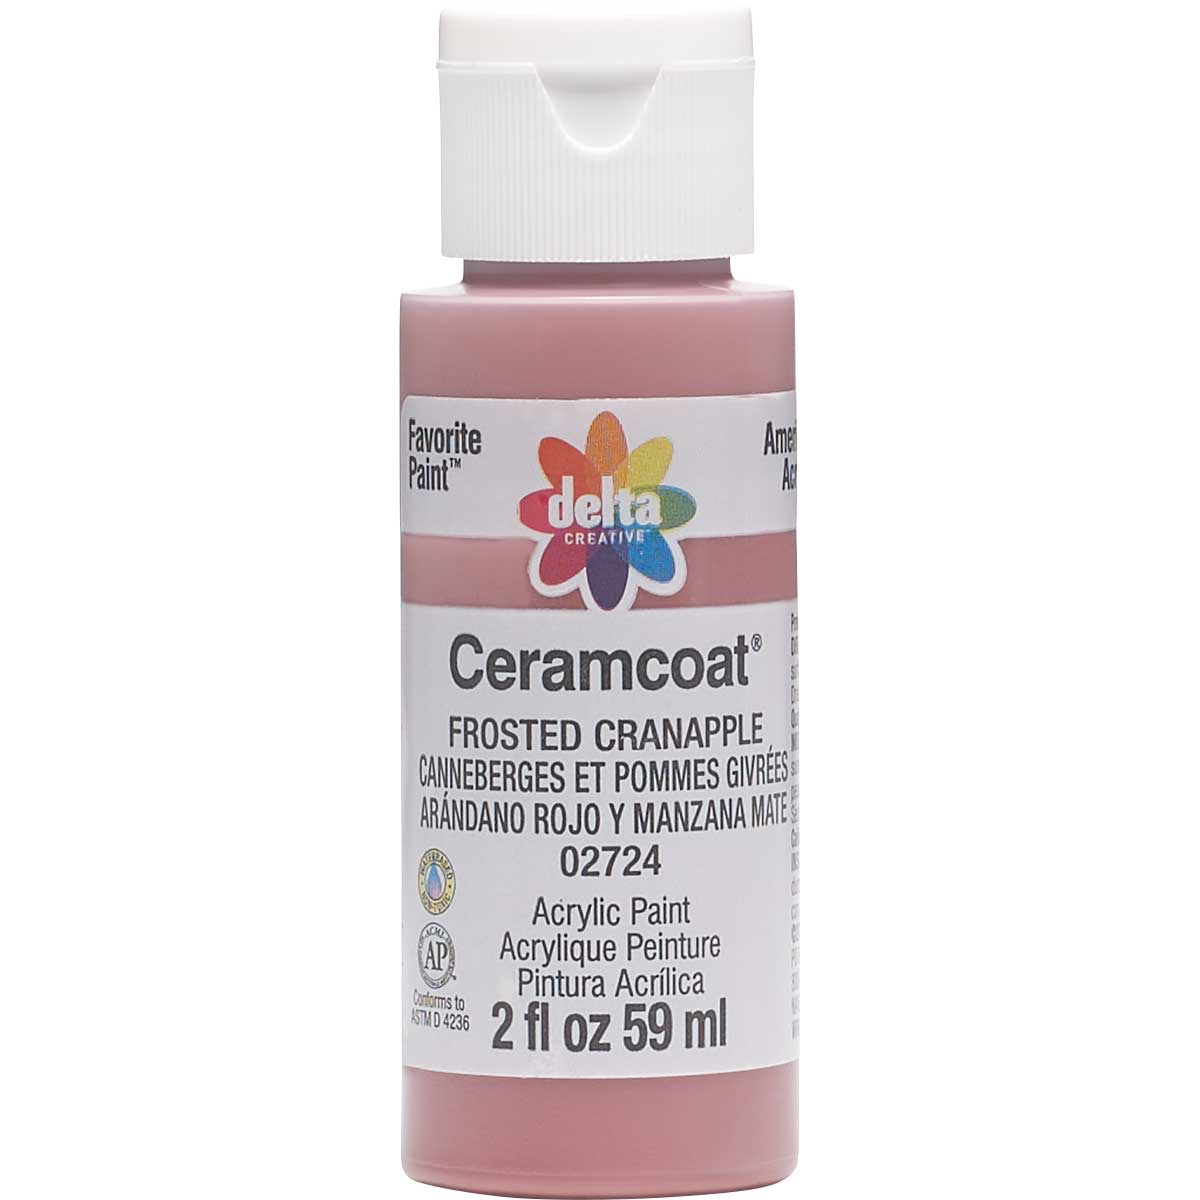 Delta Ceramcoat ® Acrylic Paint - Frosted Cranapple, 2 oz.